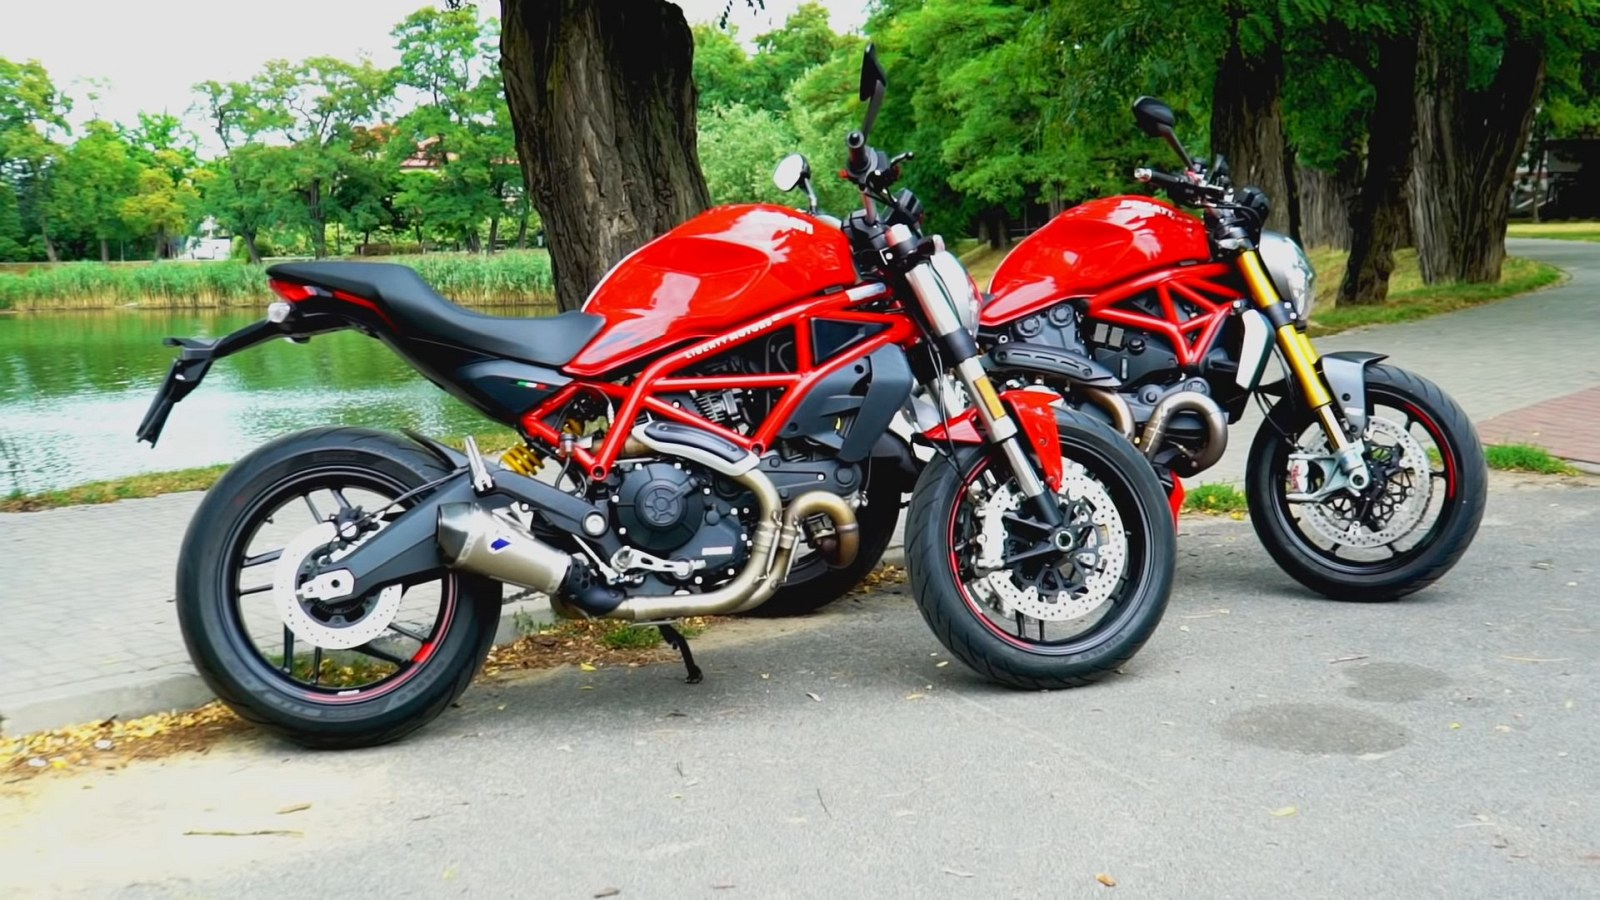 Ducati Monster 797 vs Monster 1200 4